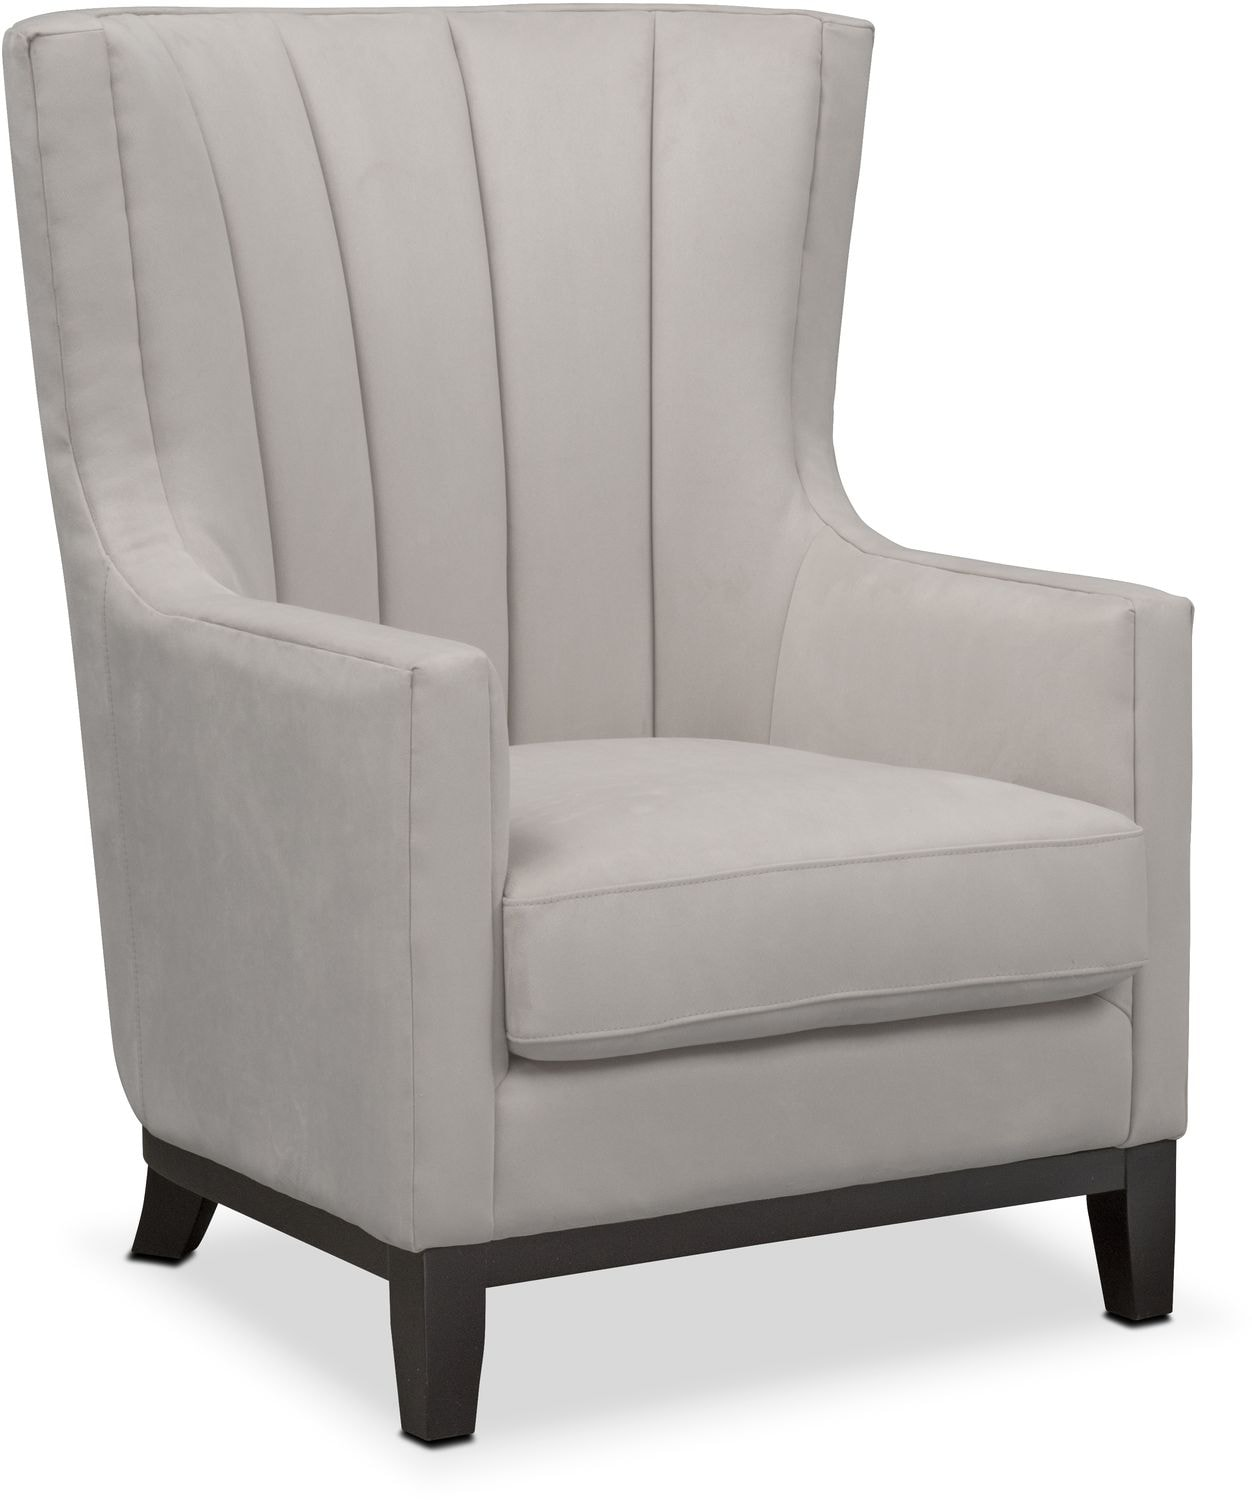 light gray accent chairs jenny lind rocking chair white brianna value city furniture